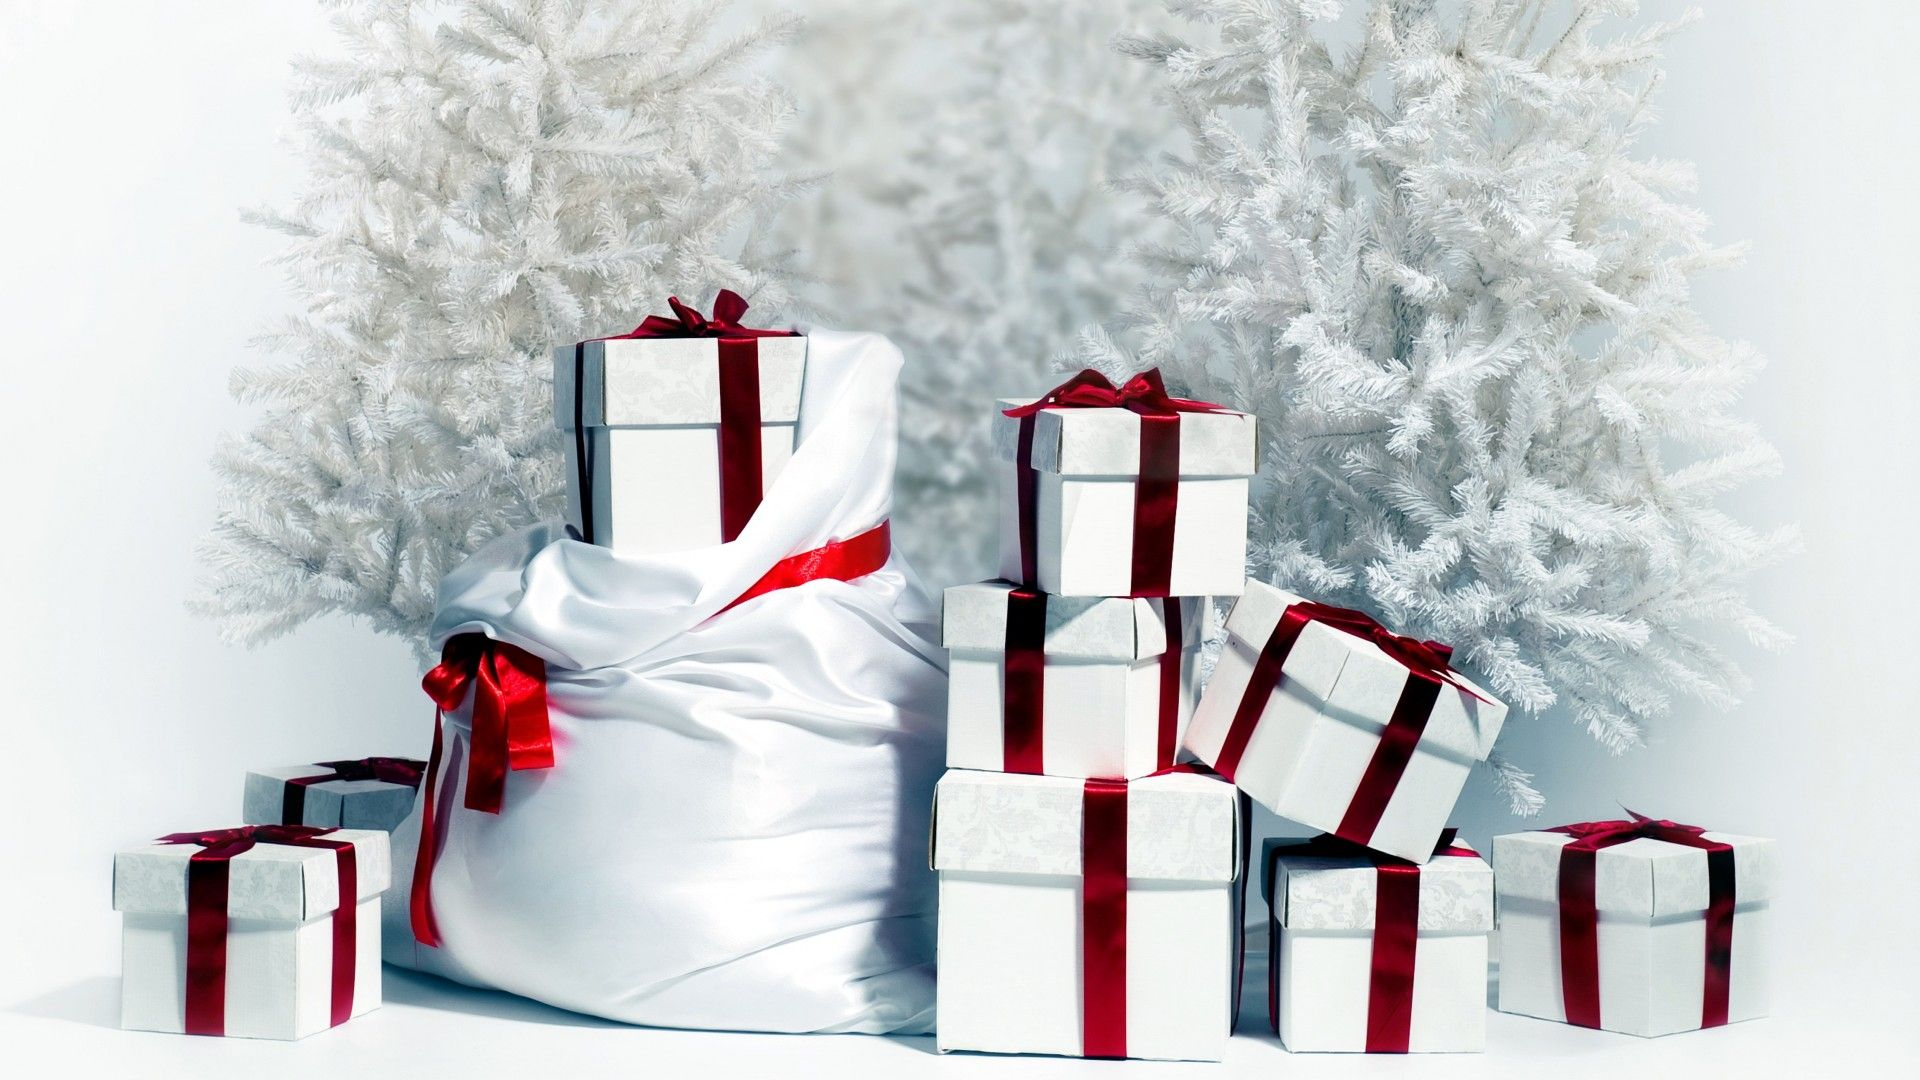 New Year Gifts wallpaper download